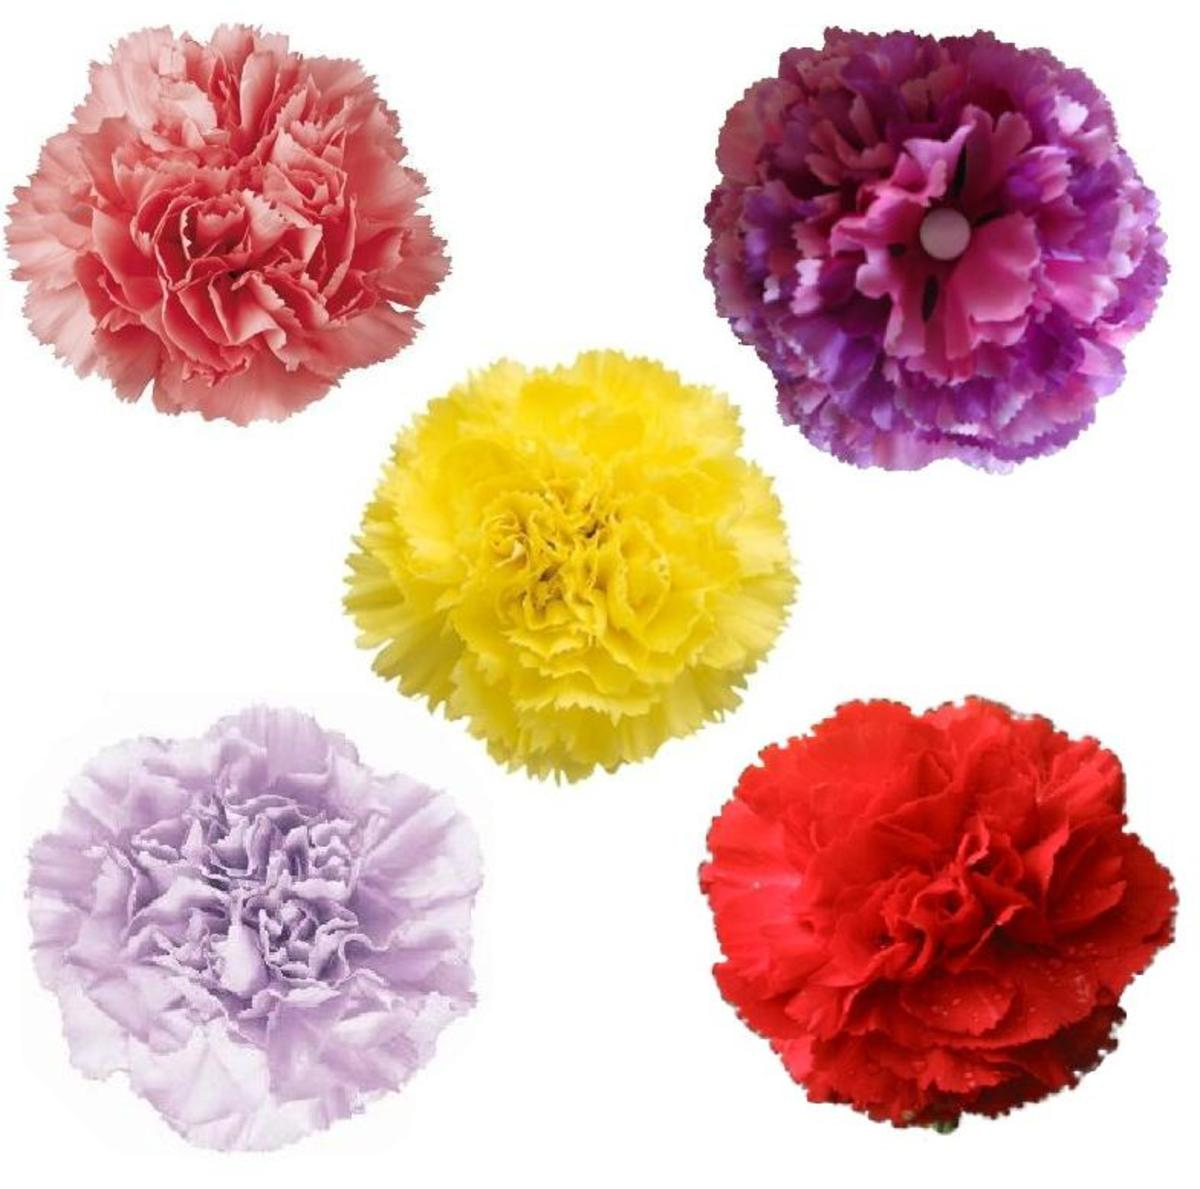 carnation flower facts and meaning hubpages - Carnation Flower Colors